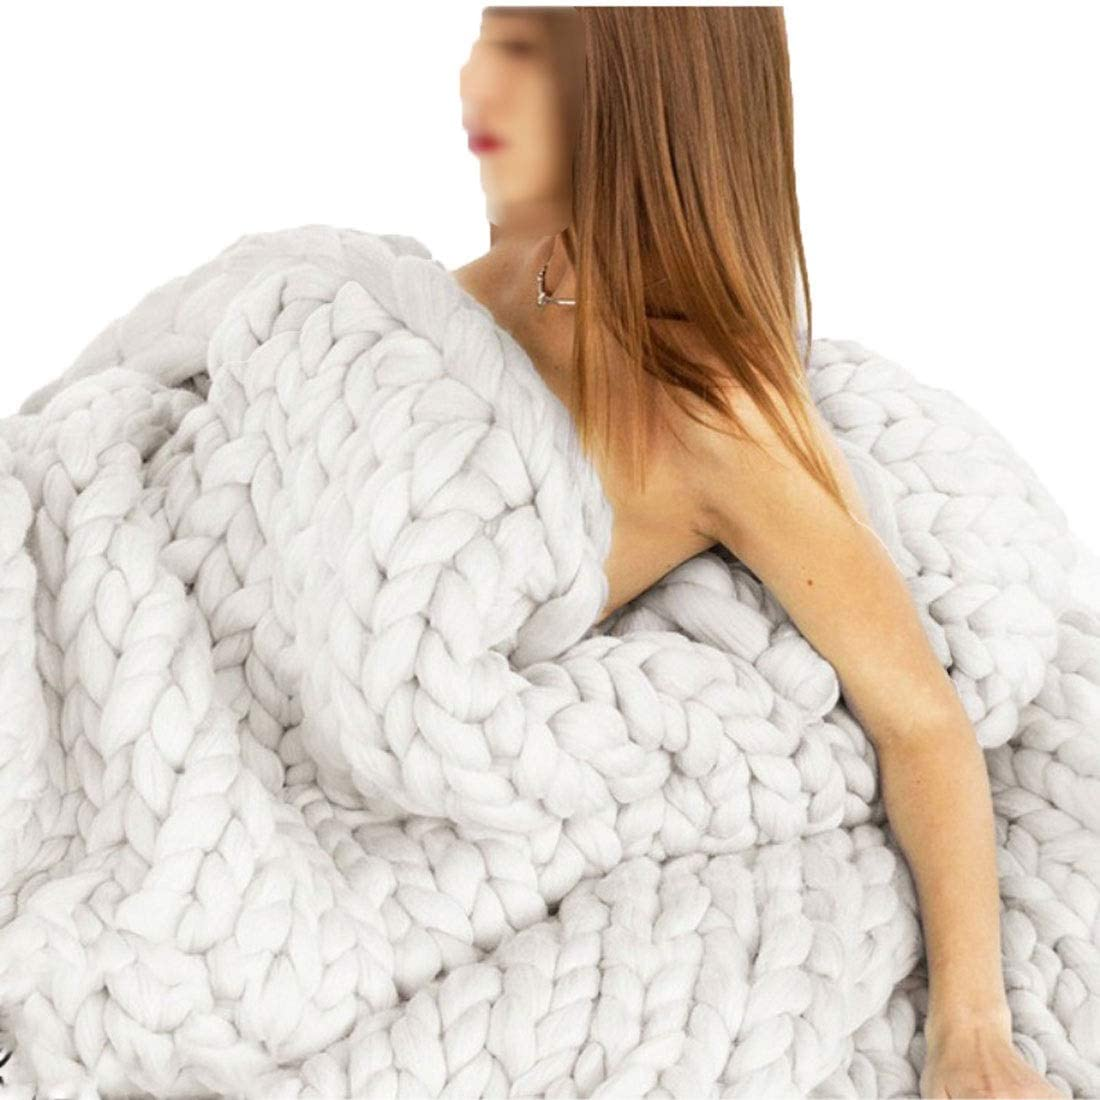 QWERTYUKJ online Free shipping on posting reviews shop Chunky Knit Blanket Soft Bulky Bed Hand Throw for Made